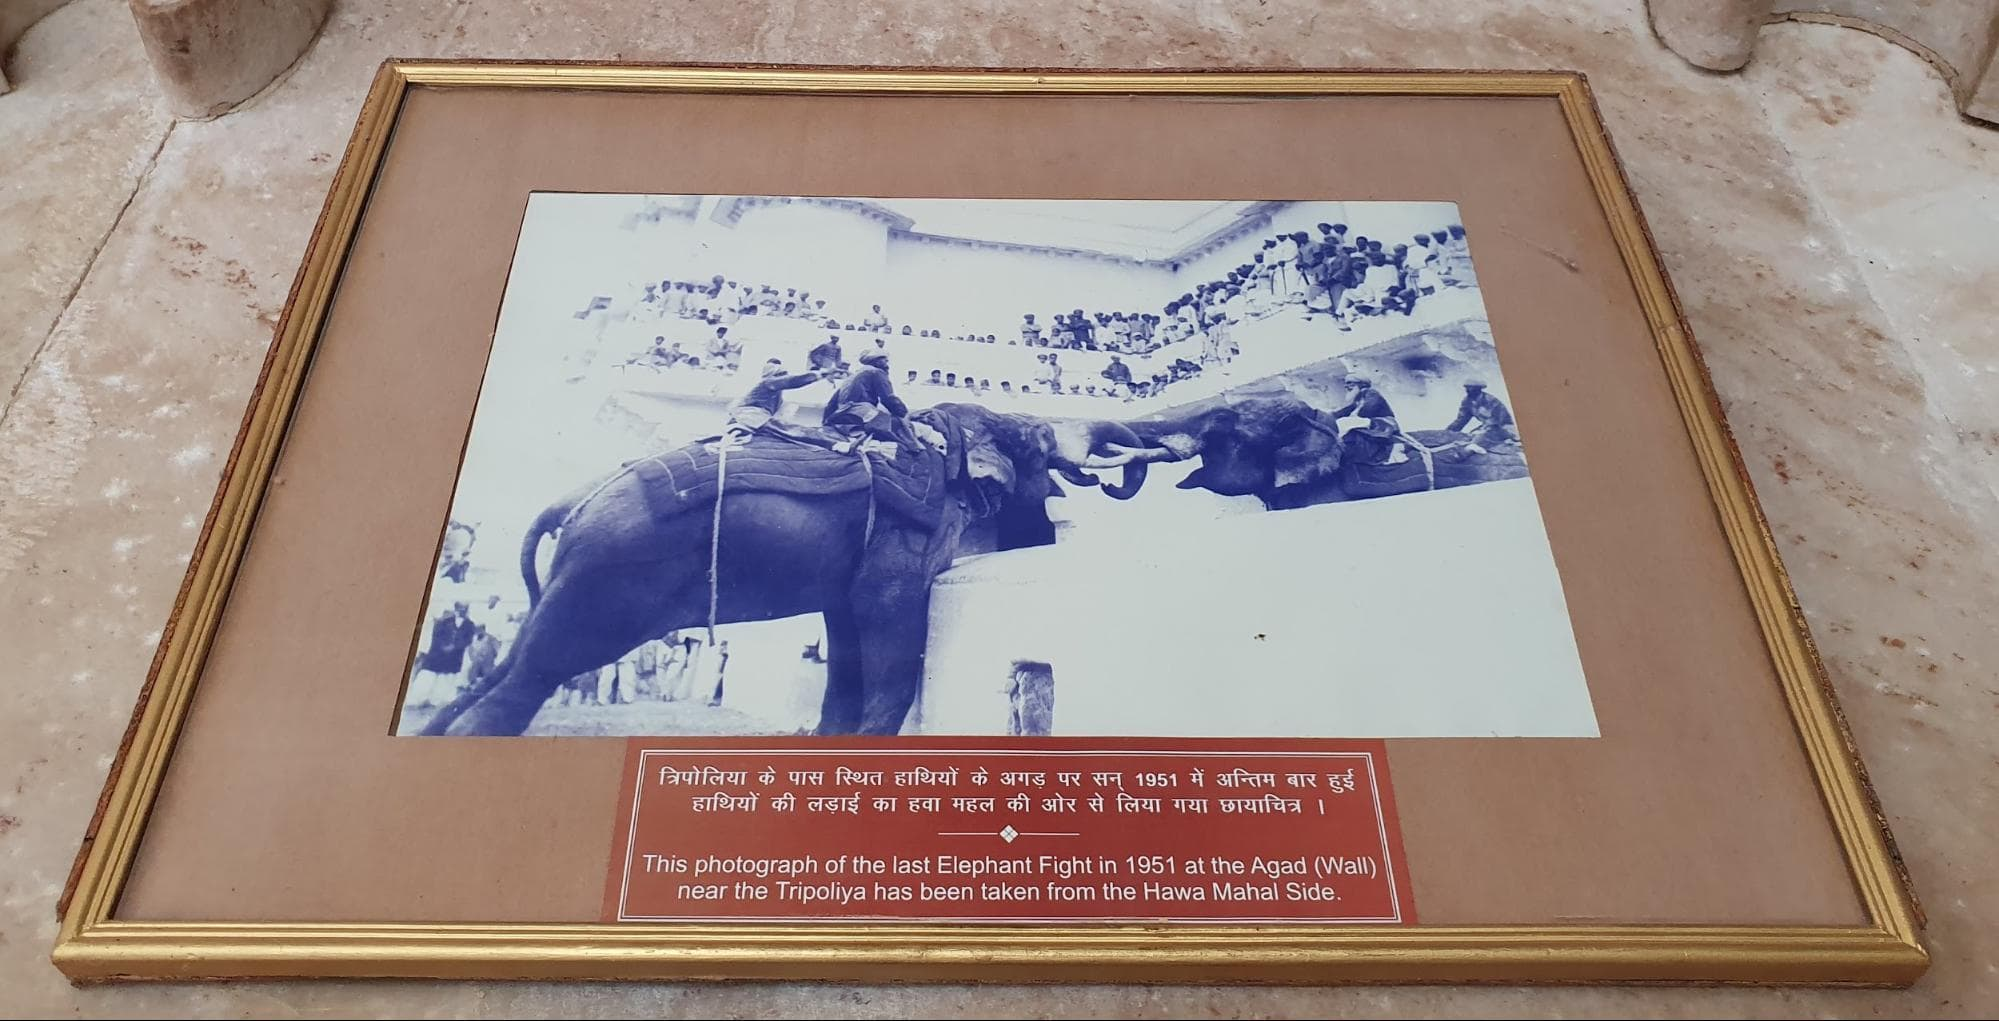 Photograph showing how elephant fights used to take place at Menak Chowk